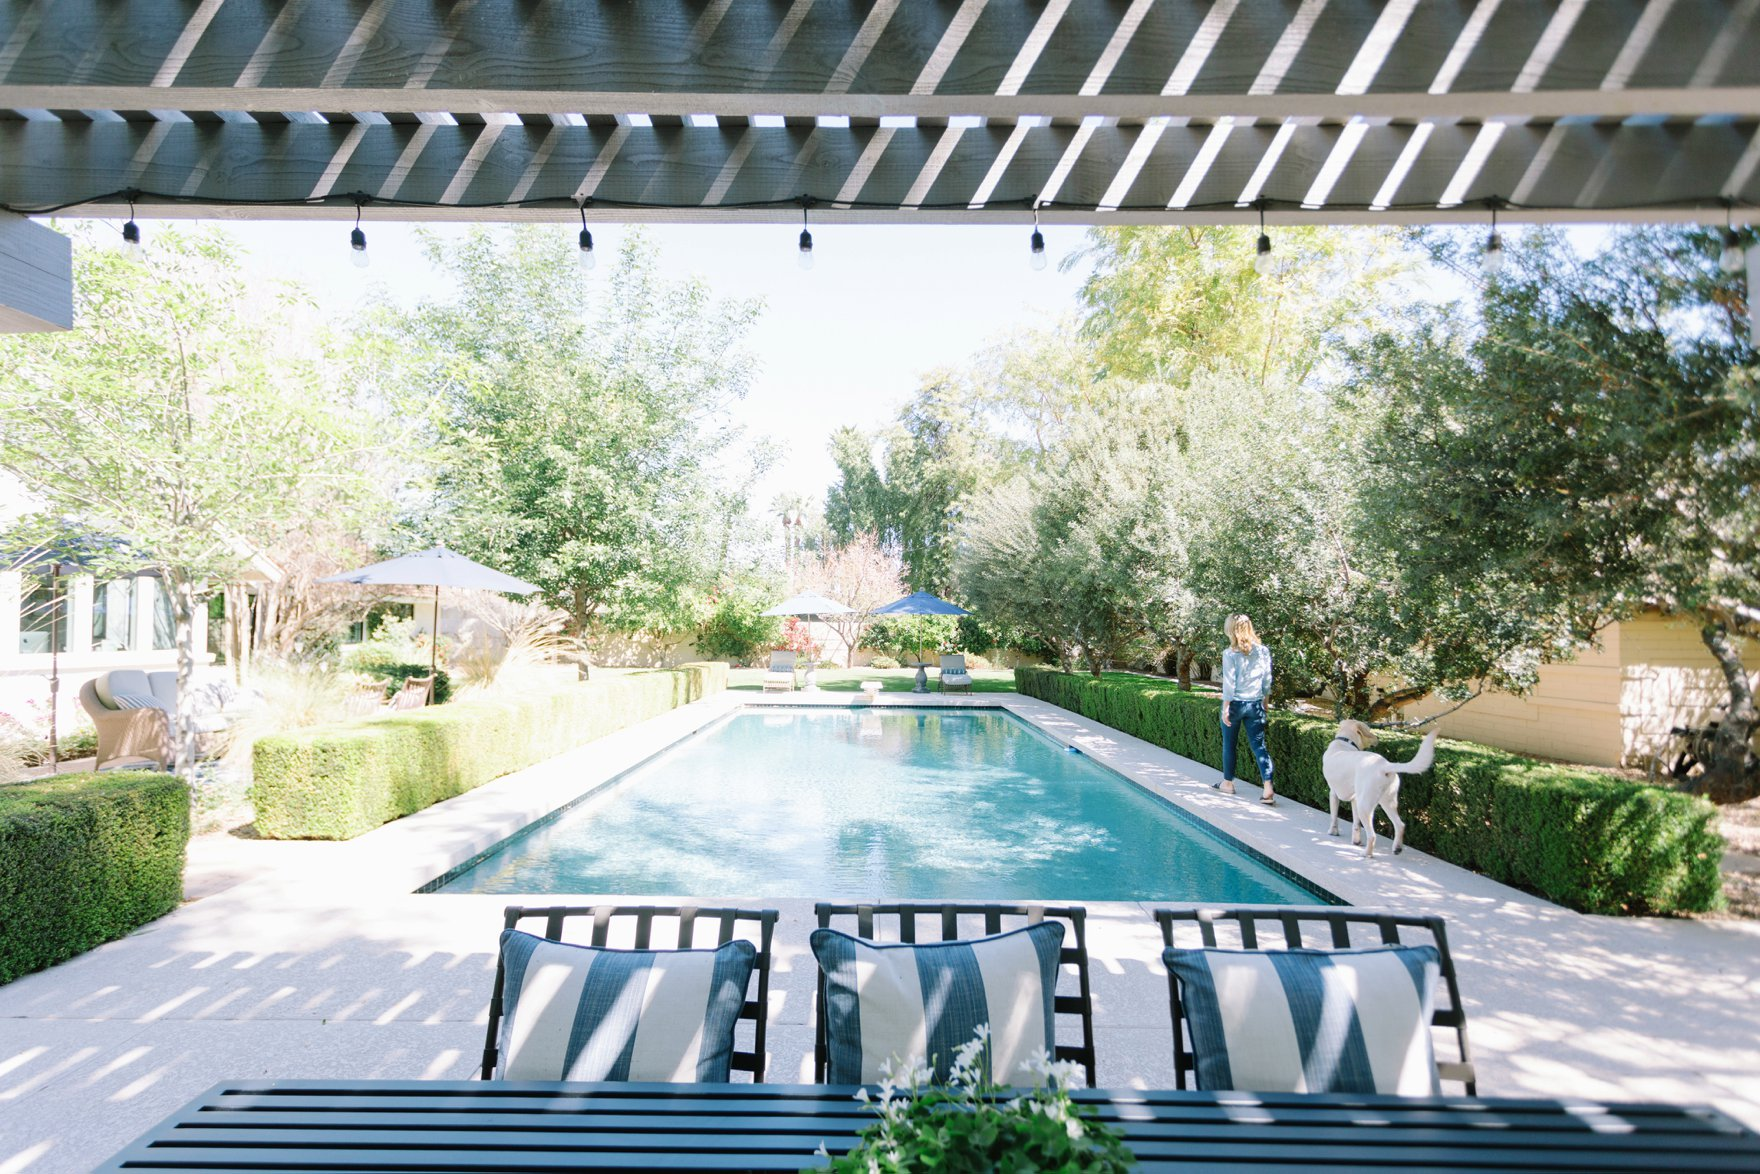 Central Phoenix arizona house tour To Have to Host Lory Parson backyard pool